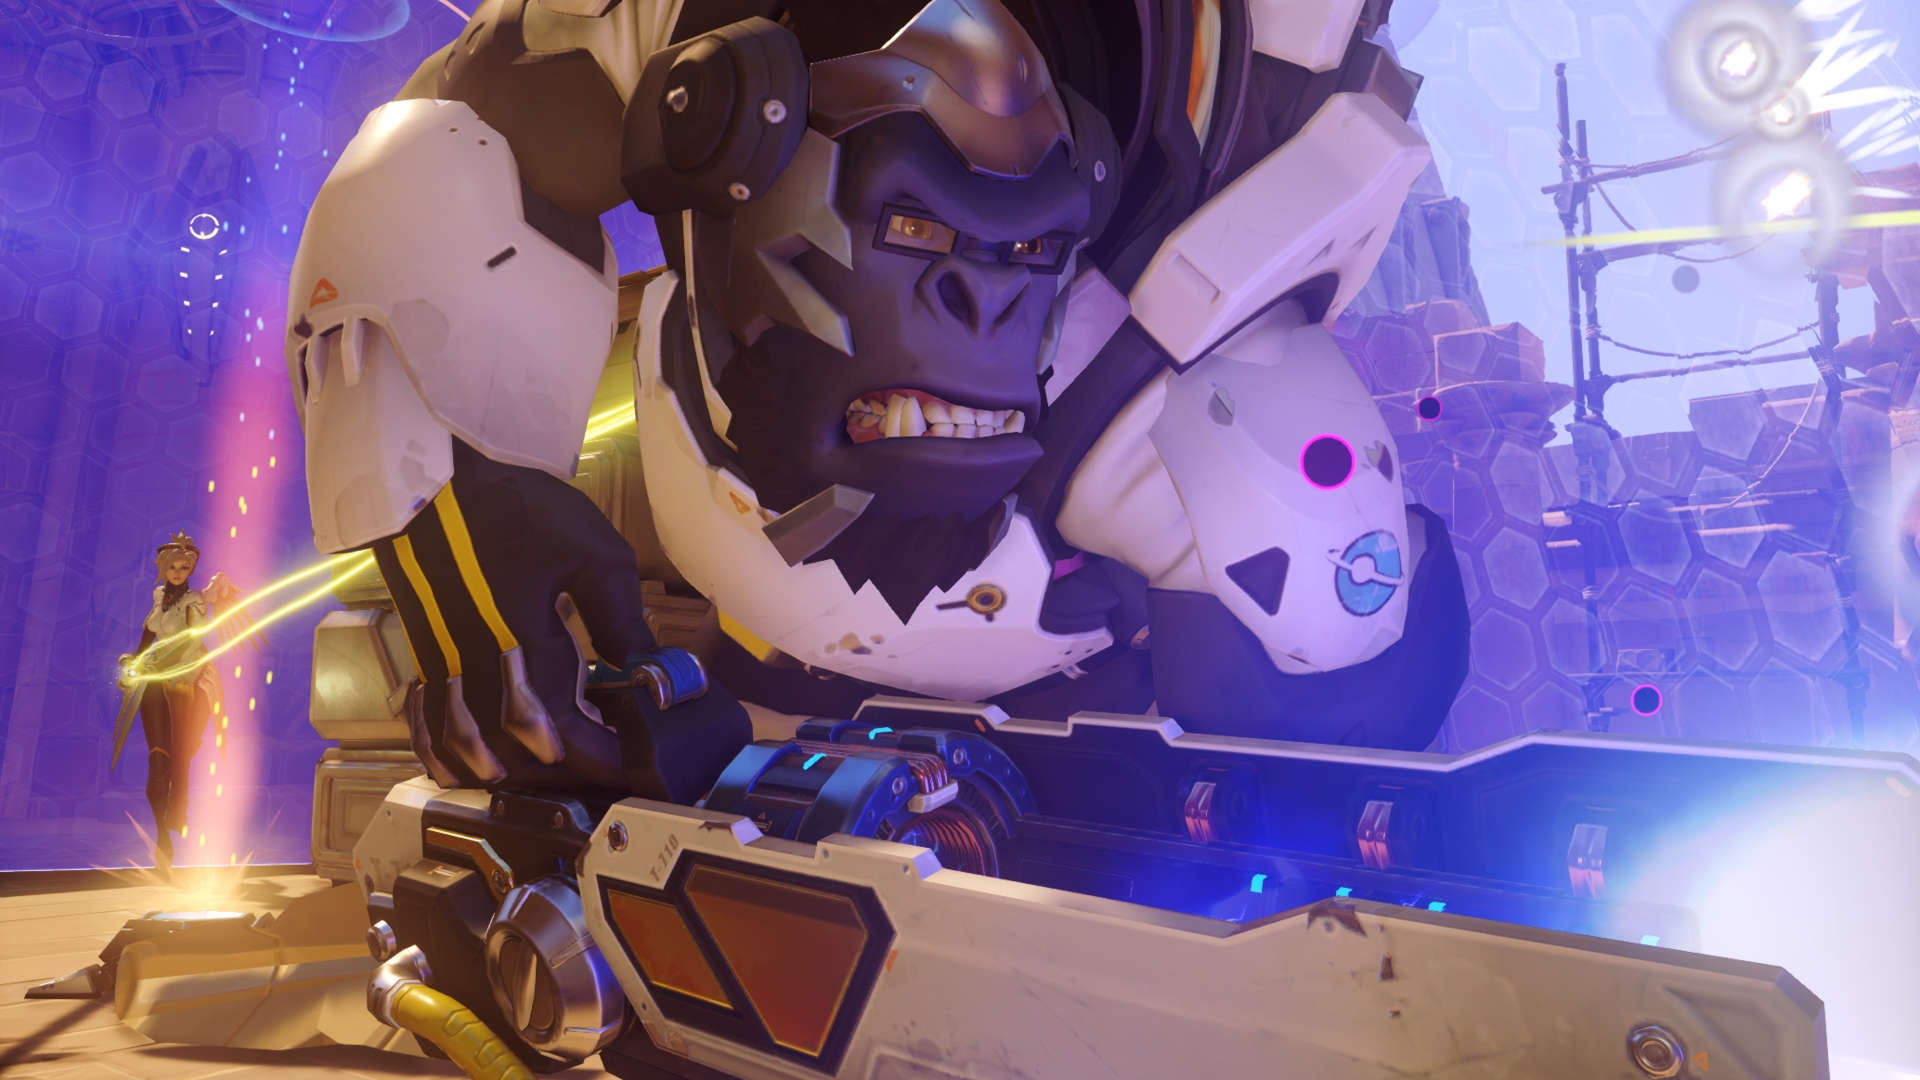 High Ranked Overwatch Player Cheats On Stream, Gets Banned Mid-Match